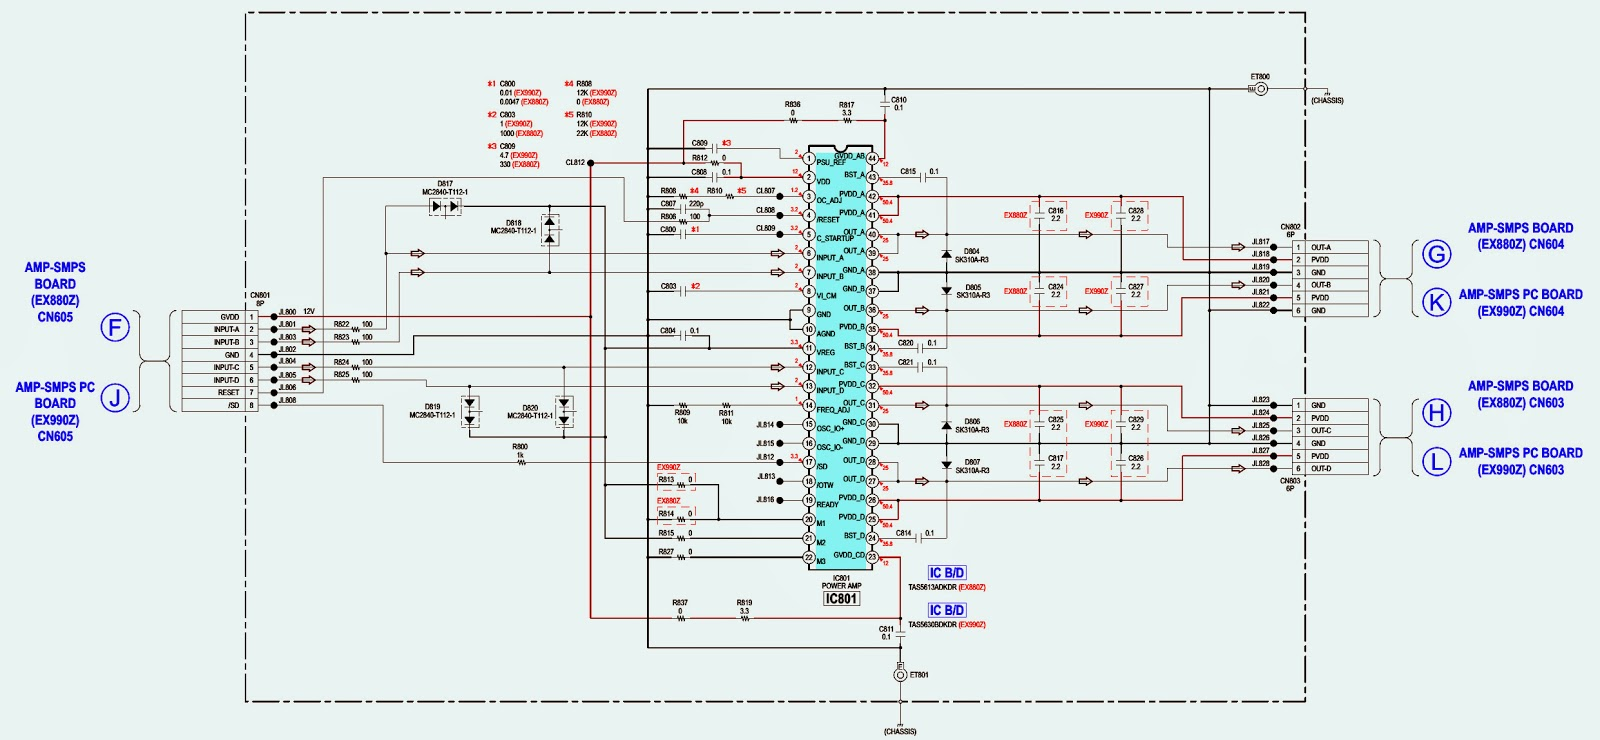 Sony Power Amp Pwb Wiring Diagrams Ac To A Qfx3008i Interconnect Device Withthreephase Wye Hcd Ex660z Schematic Diagram Smps And Rh Wiringcolor Blogspot Com Amplifier Manual Stereo